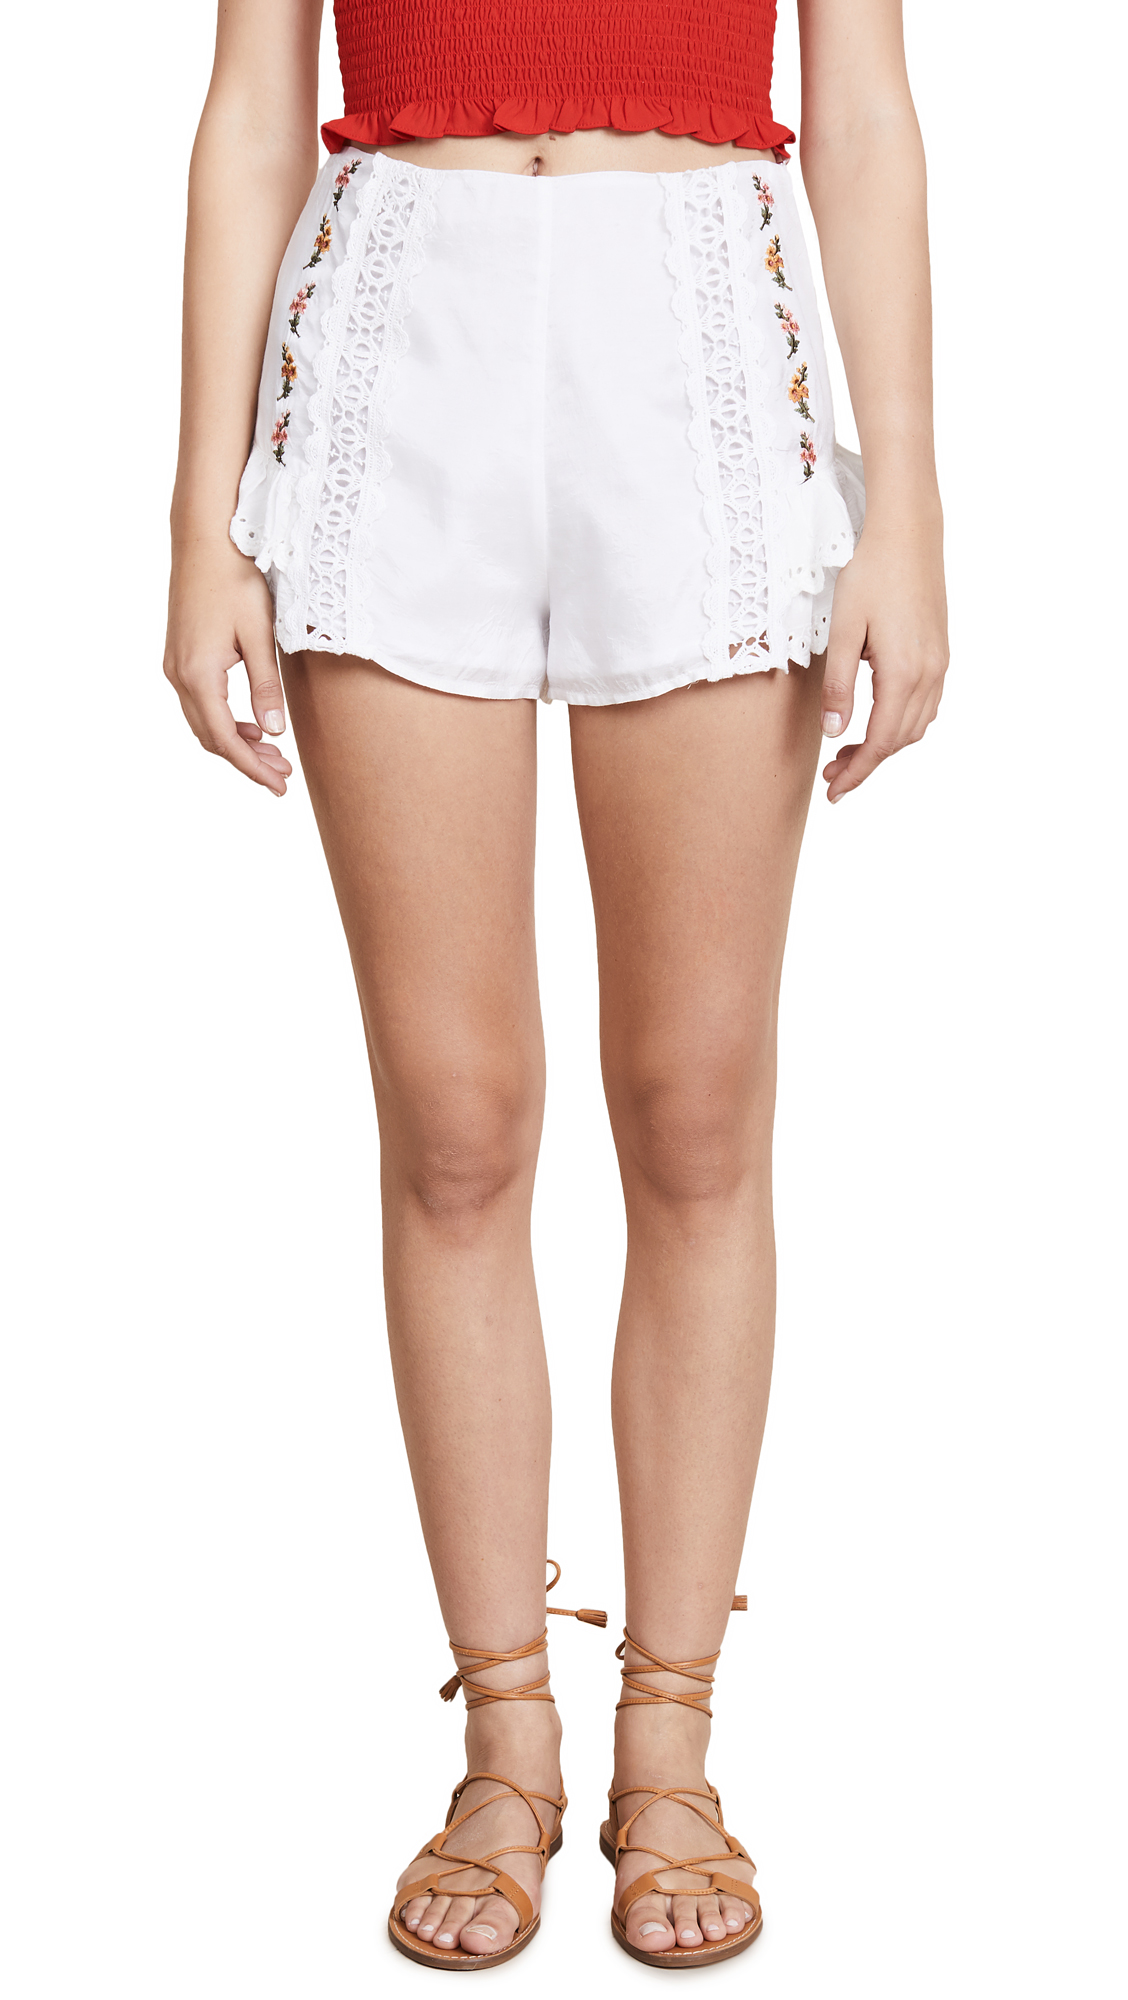 RAHICALI DREAMCATCHER EMBROIDERED SHORTS